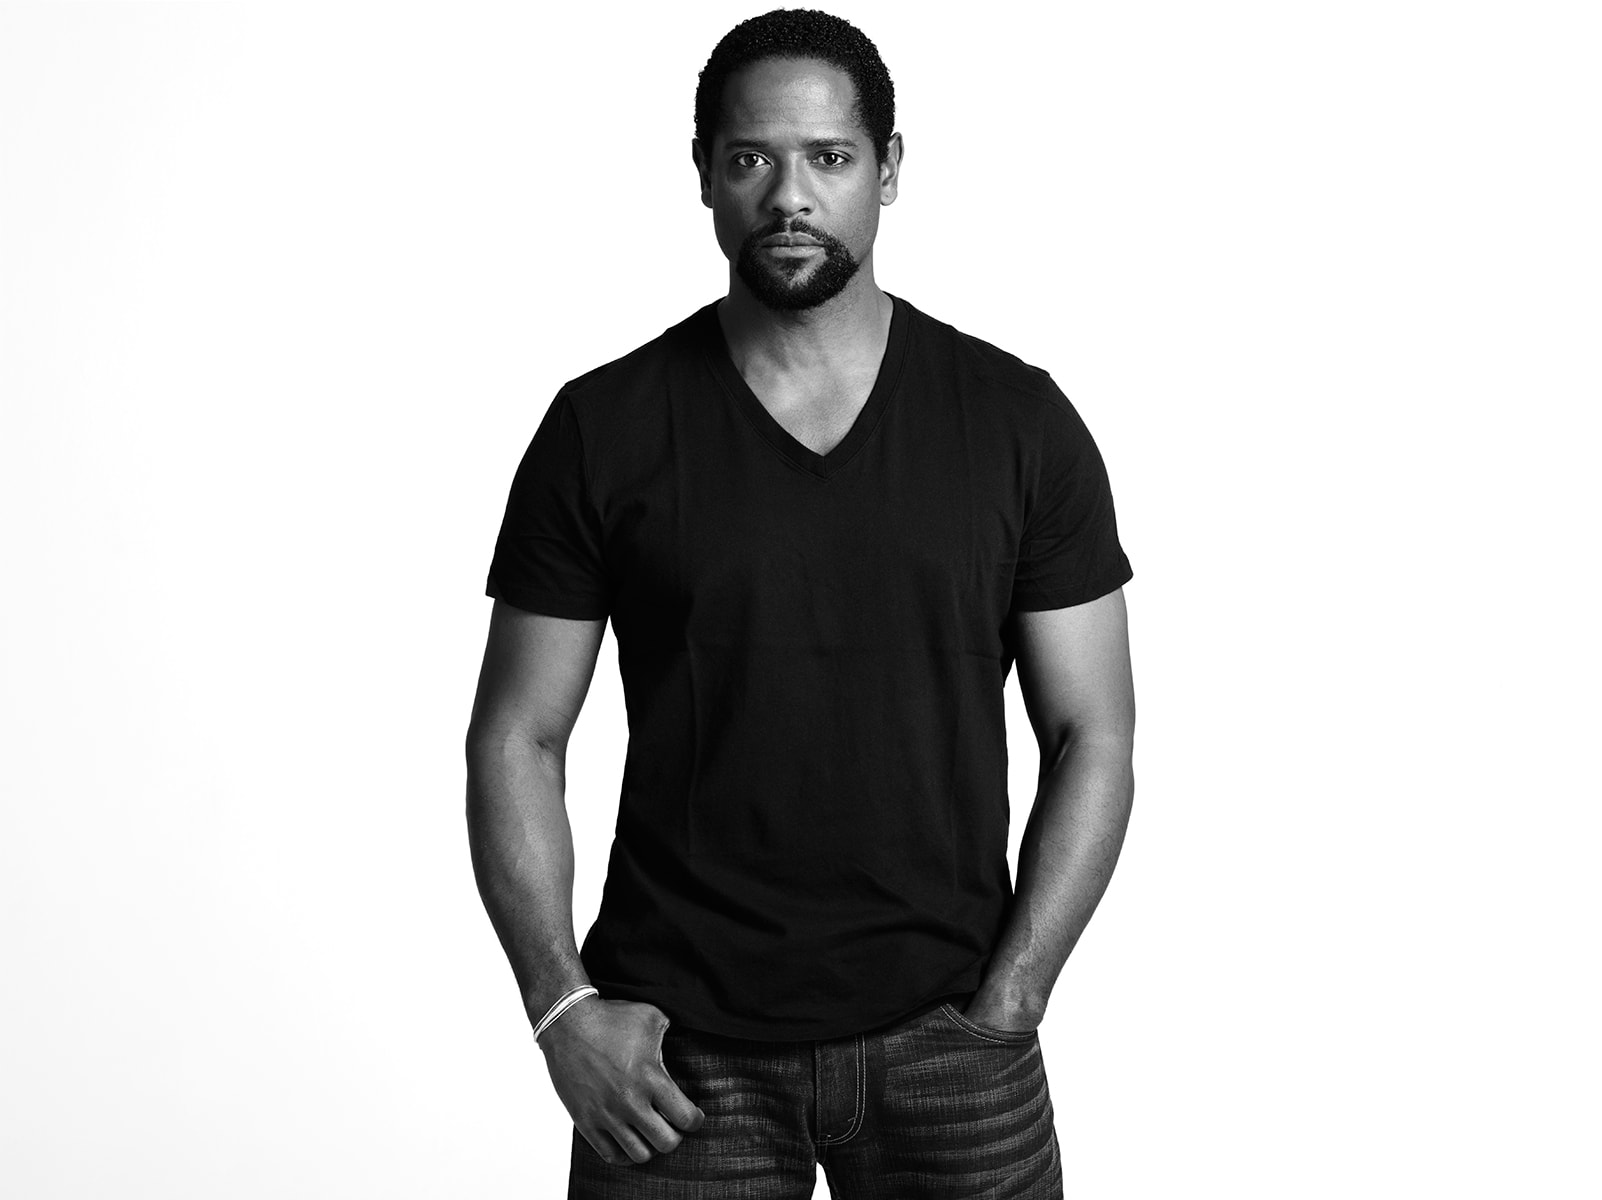 Blair Underwood Background